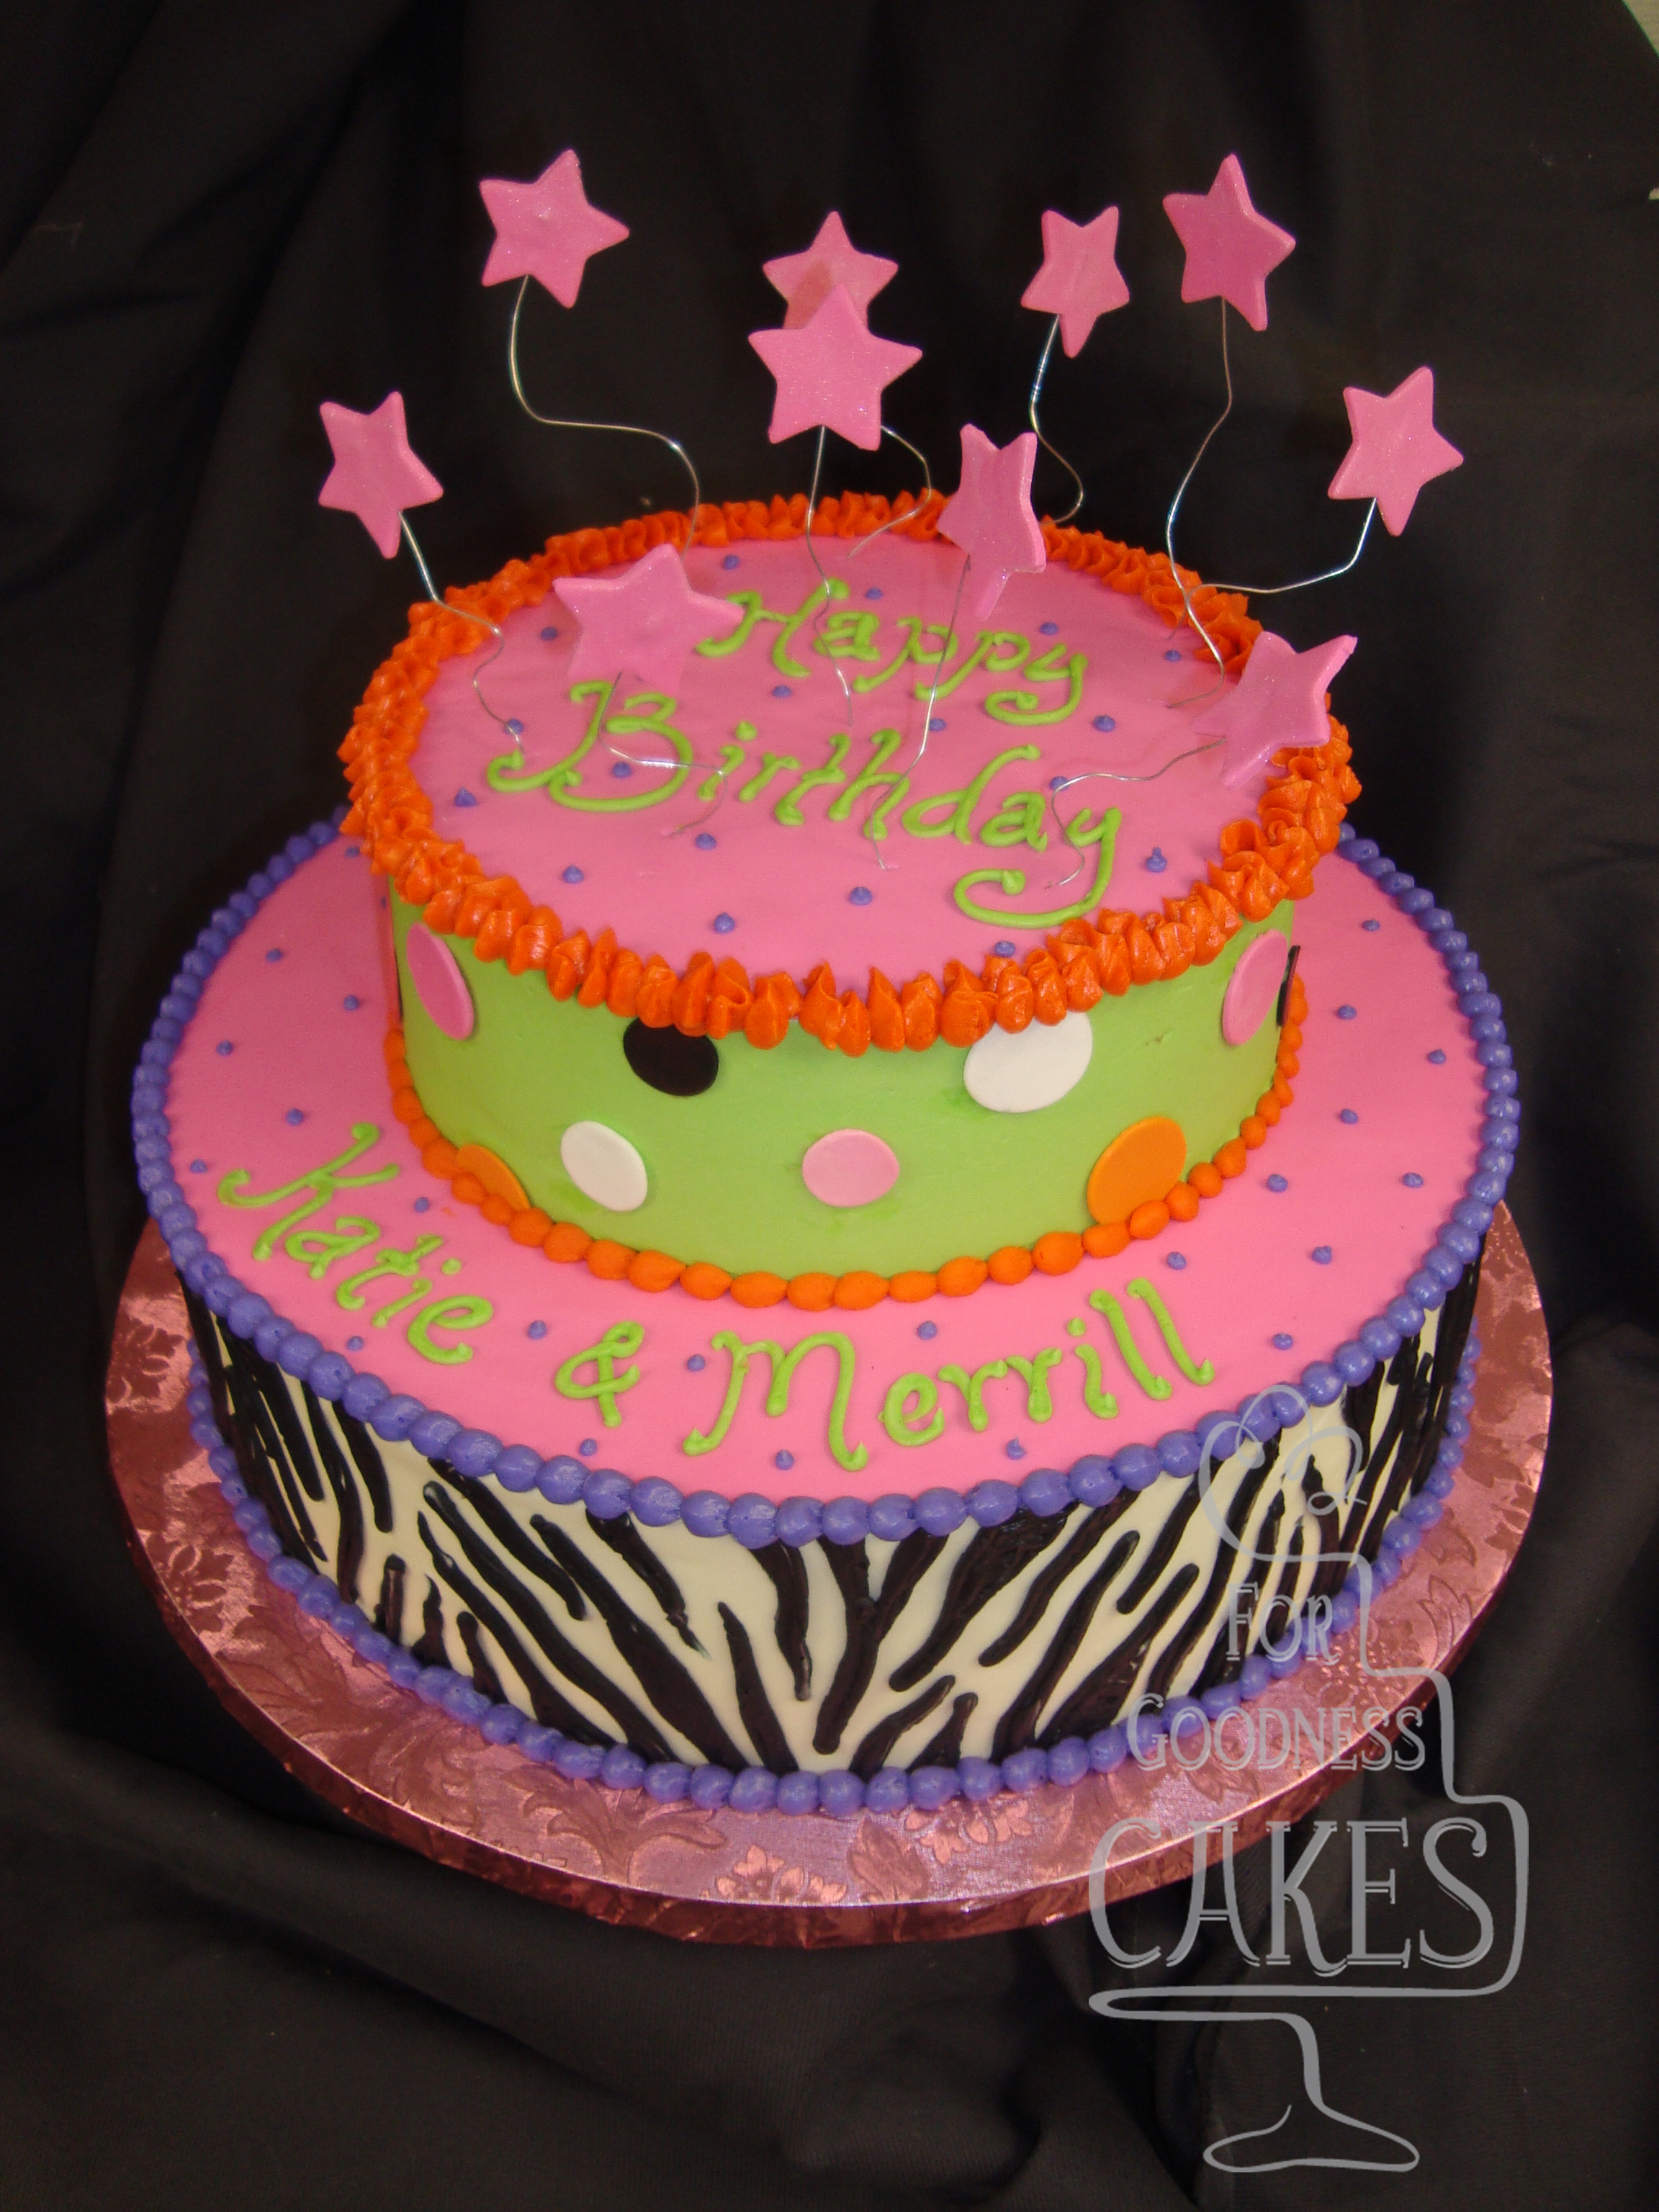 Funky Girl S Birthday Cake Copy For Goodness Cakes Of